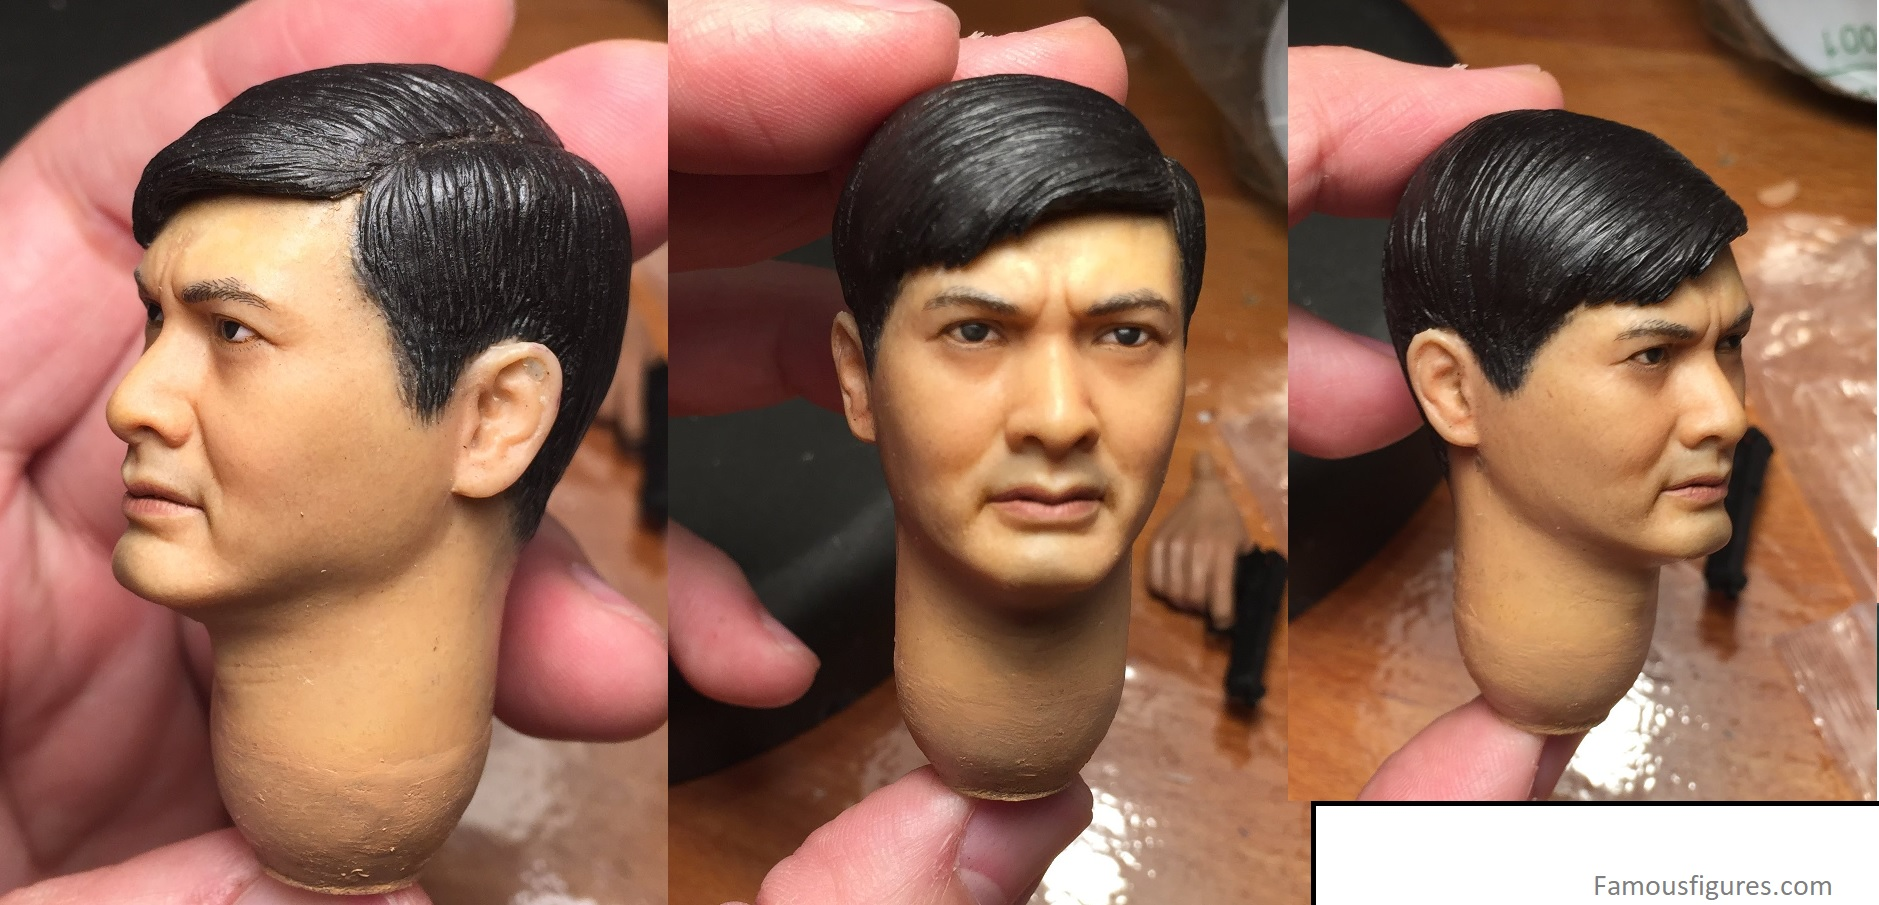 Chow Yun Fat in The Replacement Killers - Hair Sculpting Experiments 04_chowyunfat_head_replacementkillers